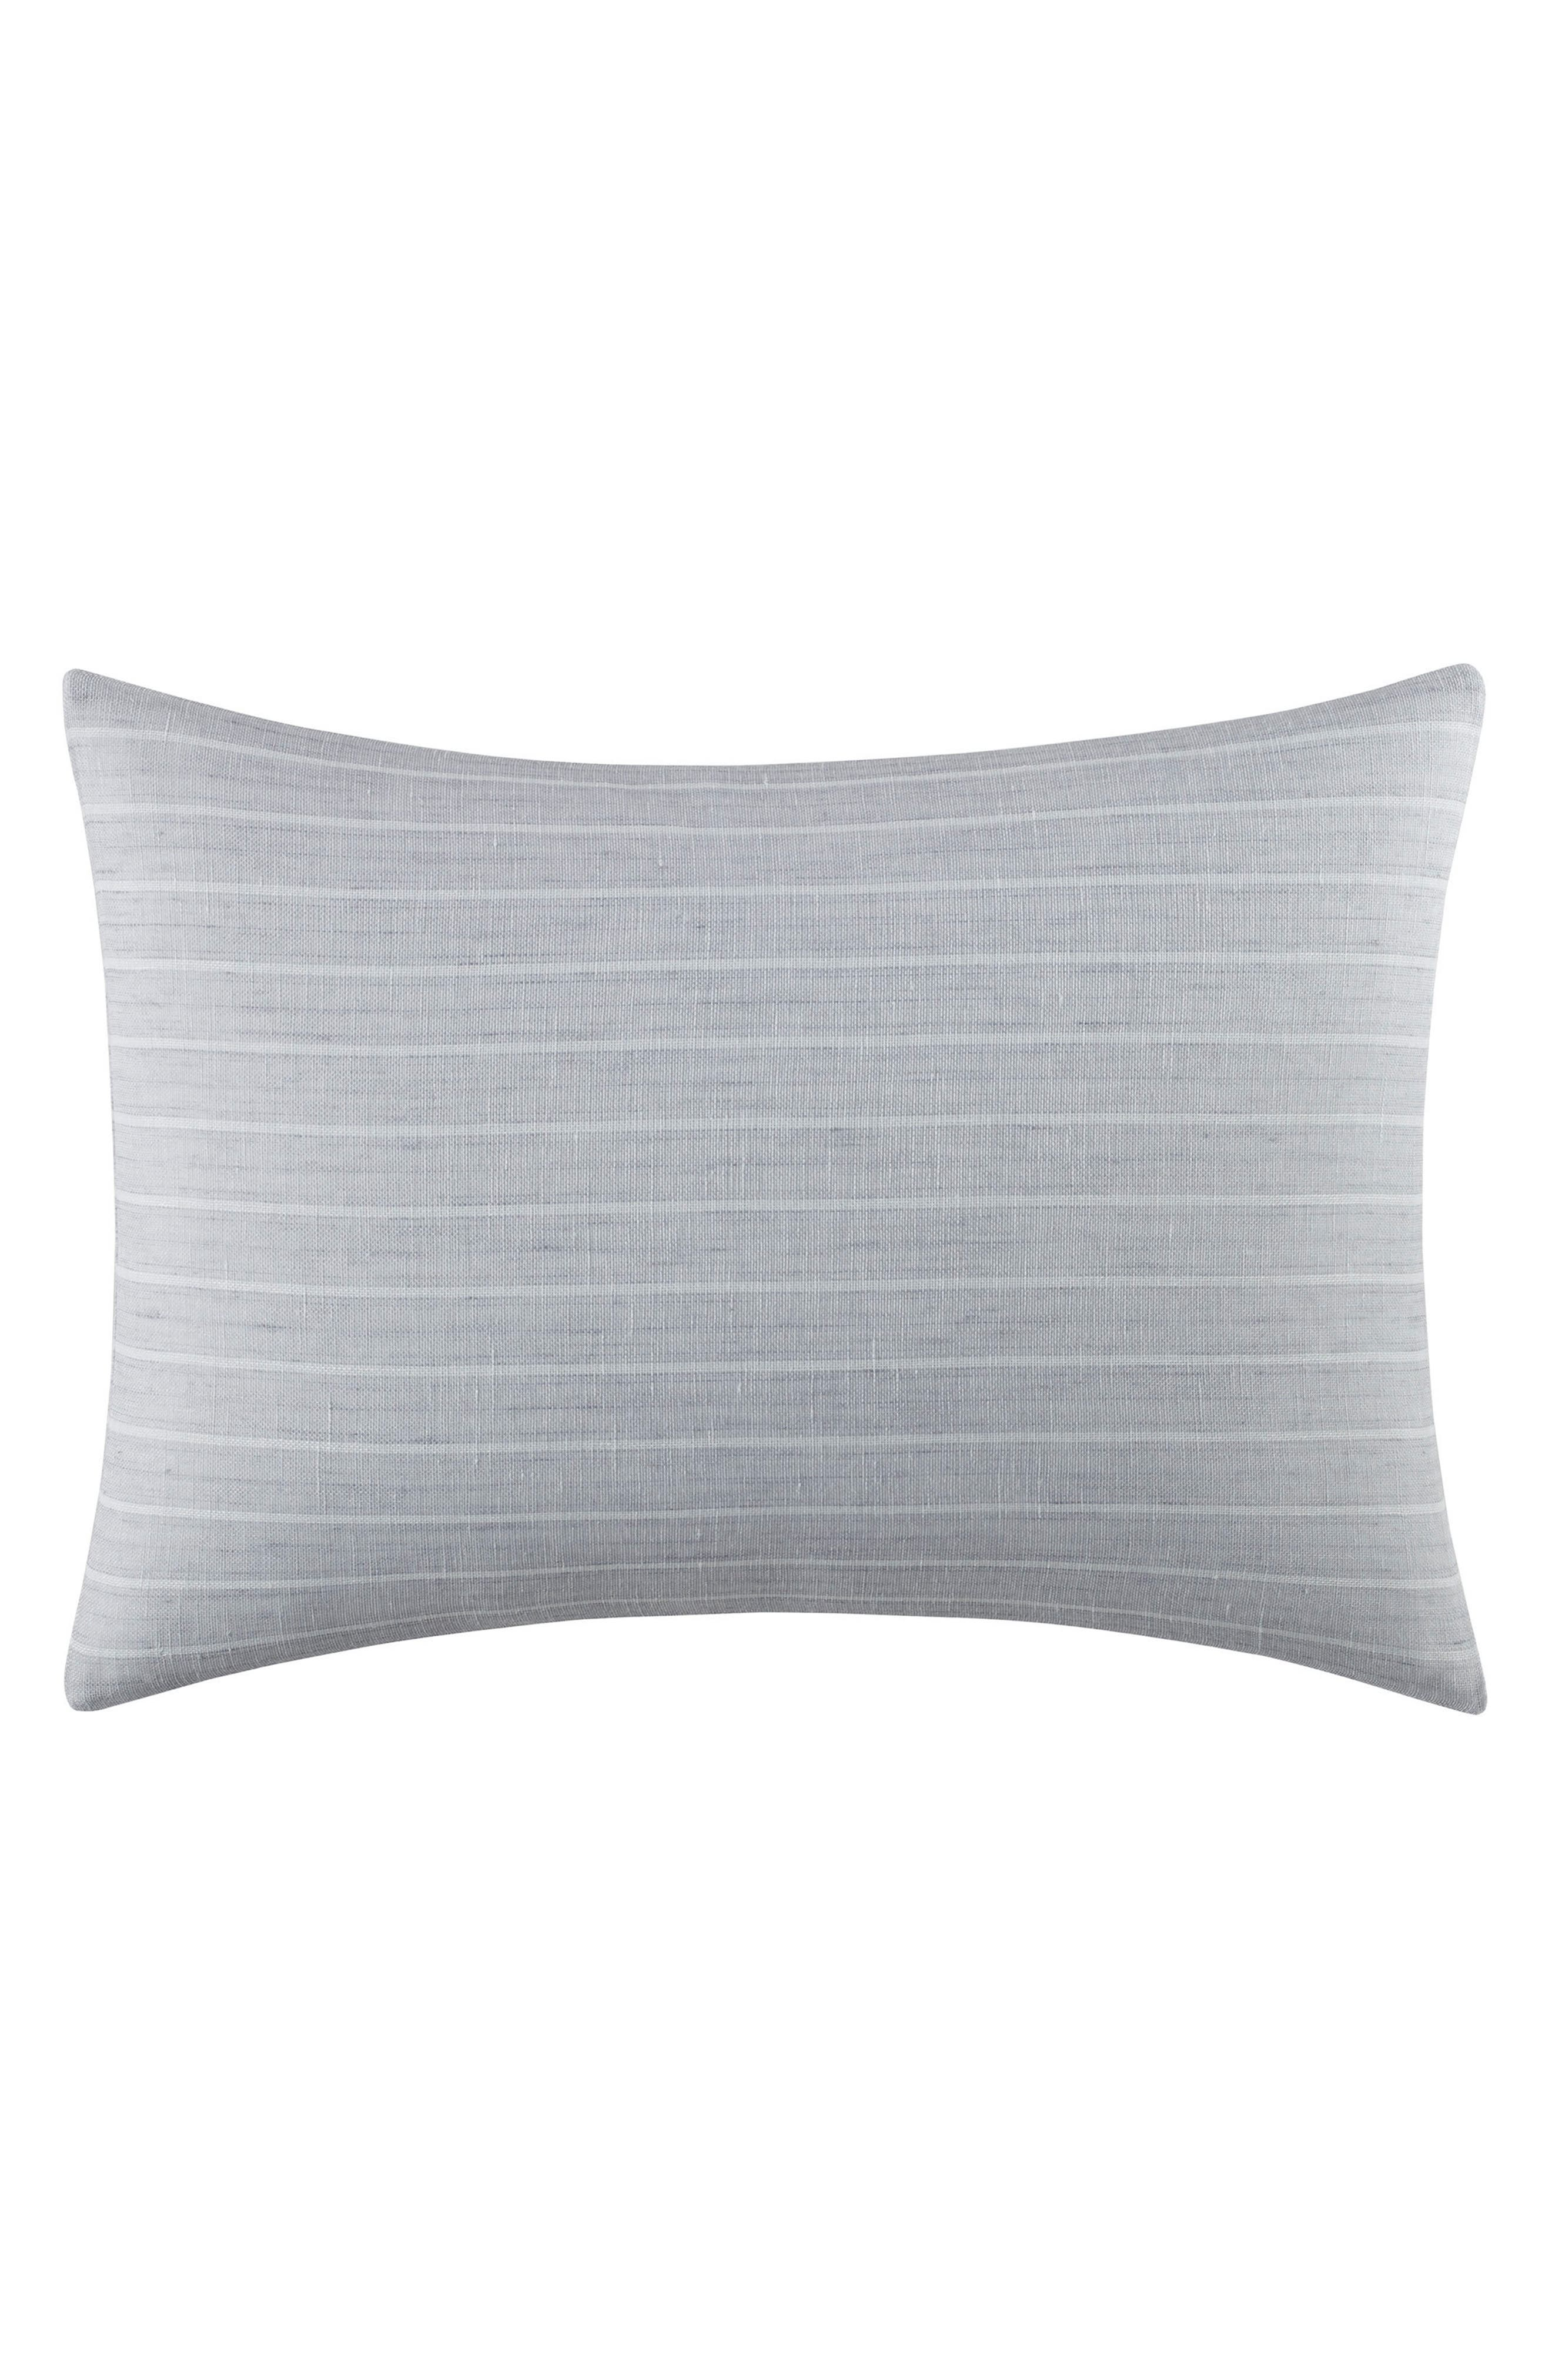 Vera Wang Veiled Bouquet Breakfast Accent Pillow